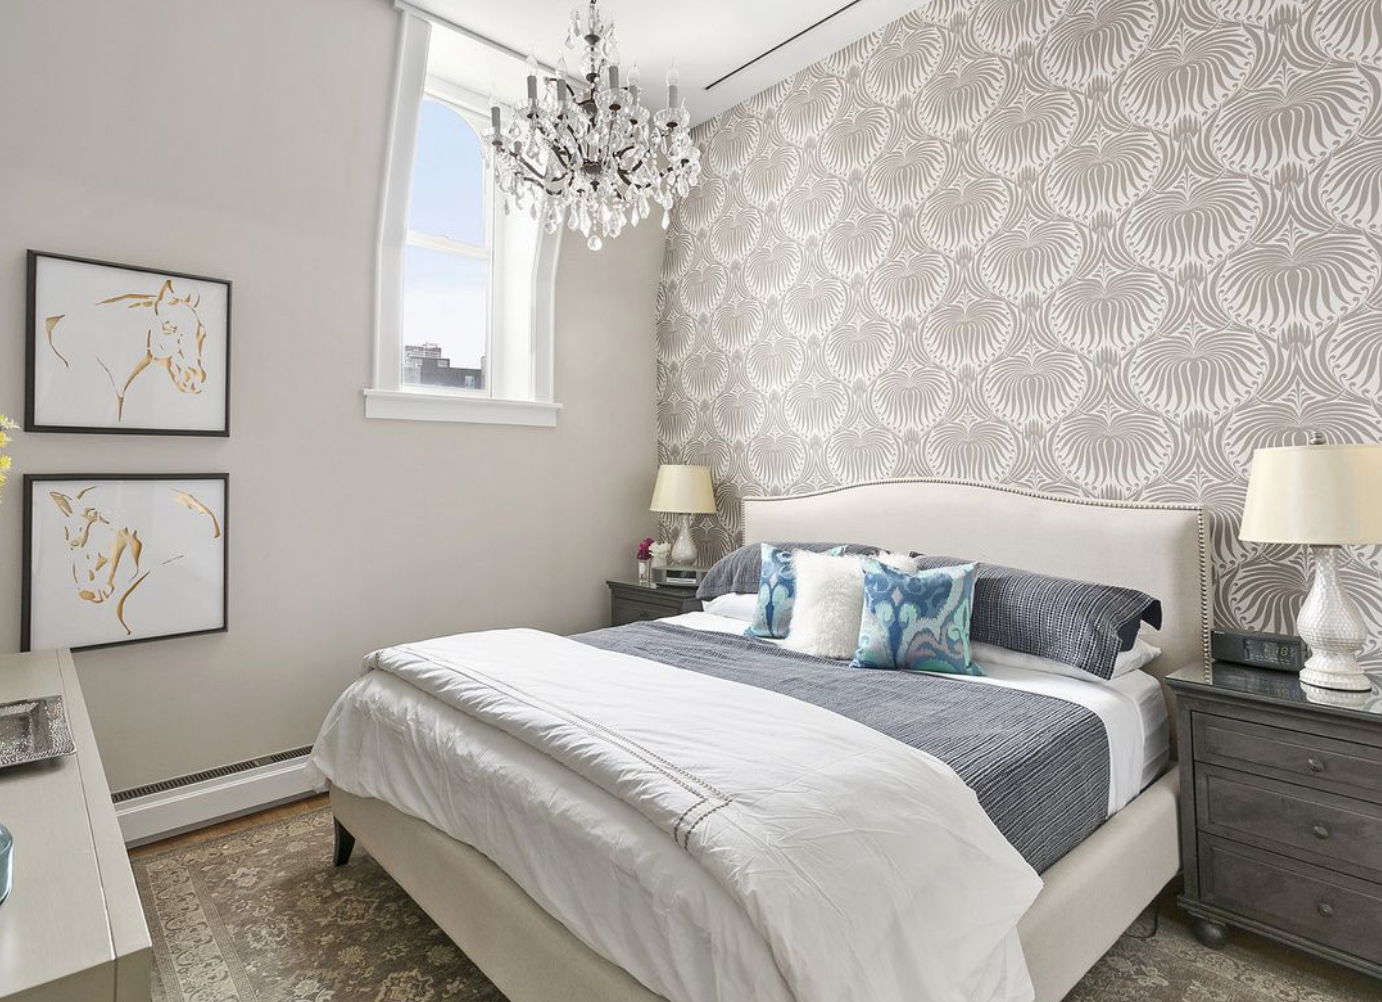 accent wall, wallpaper, bedroom (With images) | Home decor ...